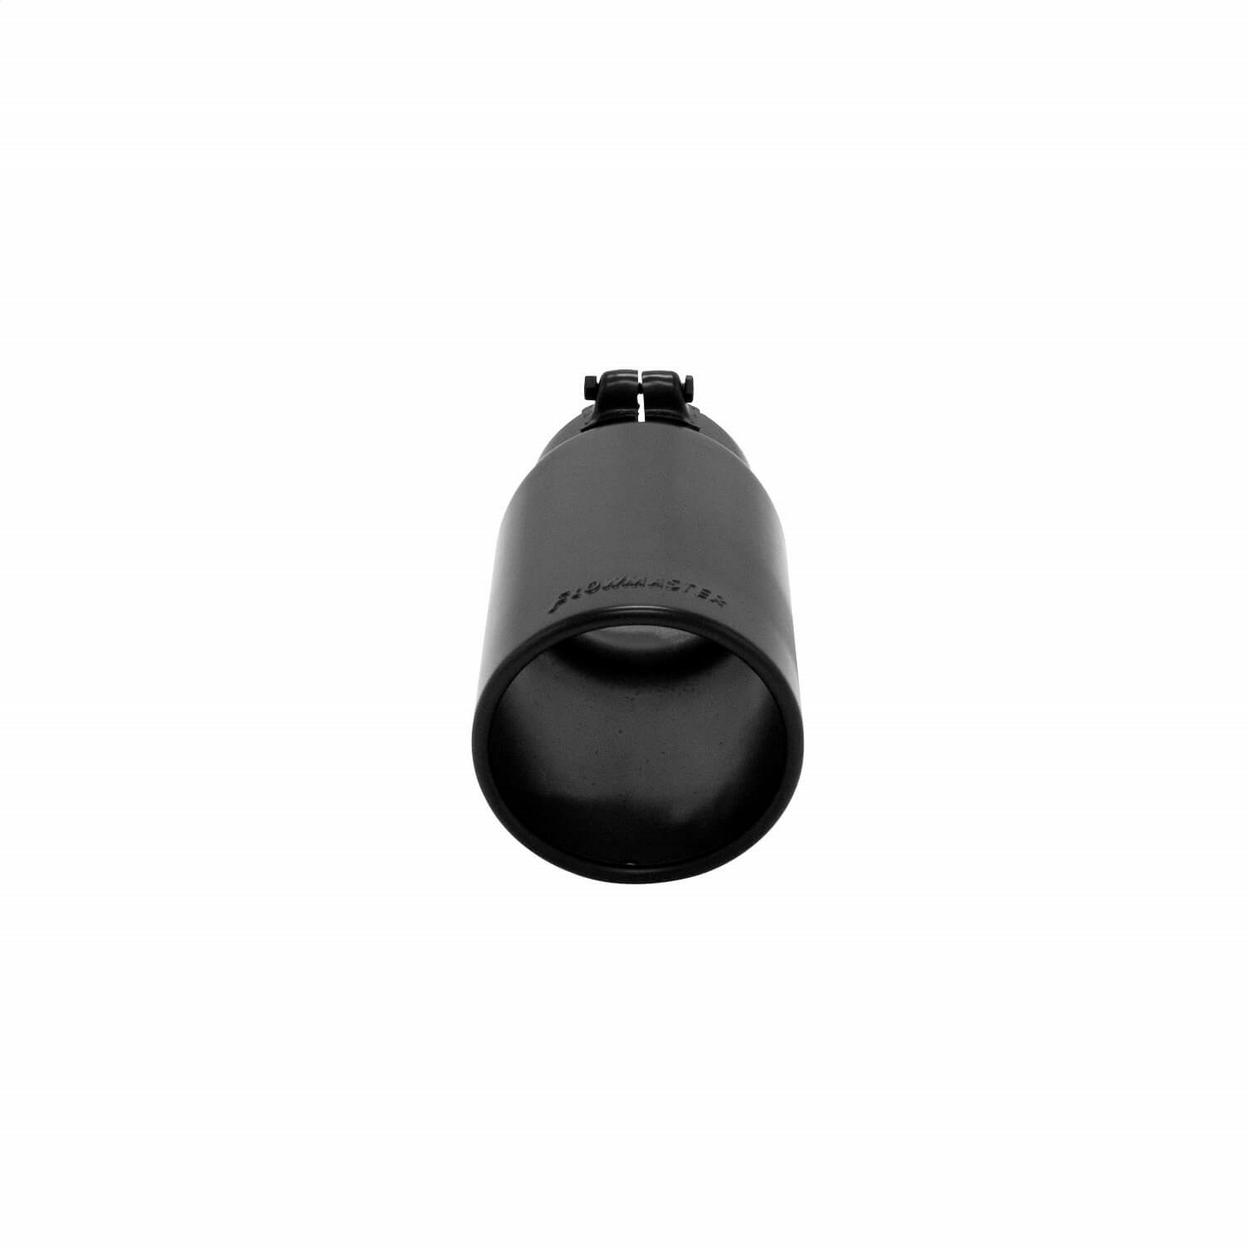 Exhaust Tip - 5 in. Rolled Angle Edge Black Ceramic Coating Fits 4 in. Tubing